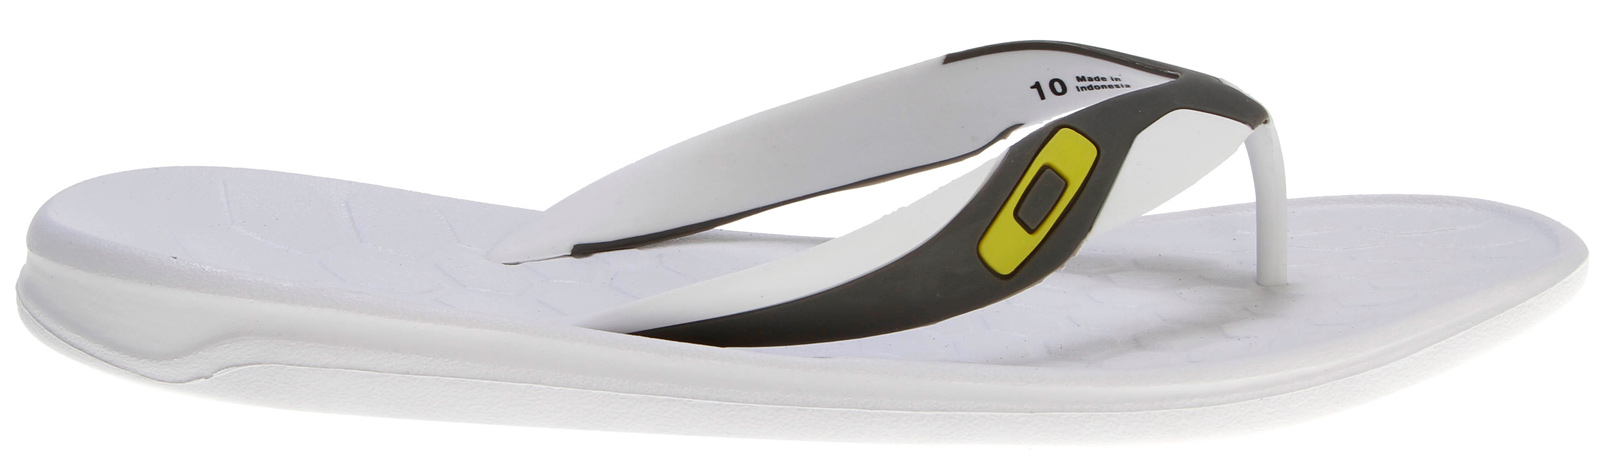 Surf Key Features of the Oakley Operative 2 Sandals: Upper: 2 color injection molded TPU strap with raised Oakley icon Footbed/Midsole: Compression molded EVA chassis Outsole: High traction, high abrasion Unobtanium® rubber insert outsole - $32.00